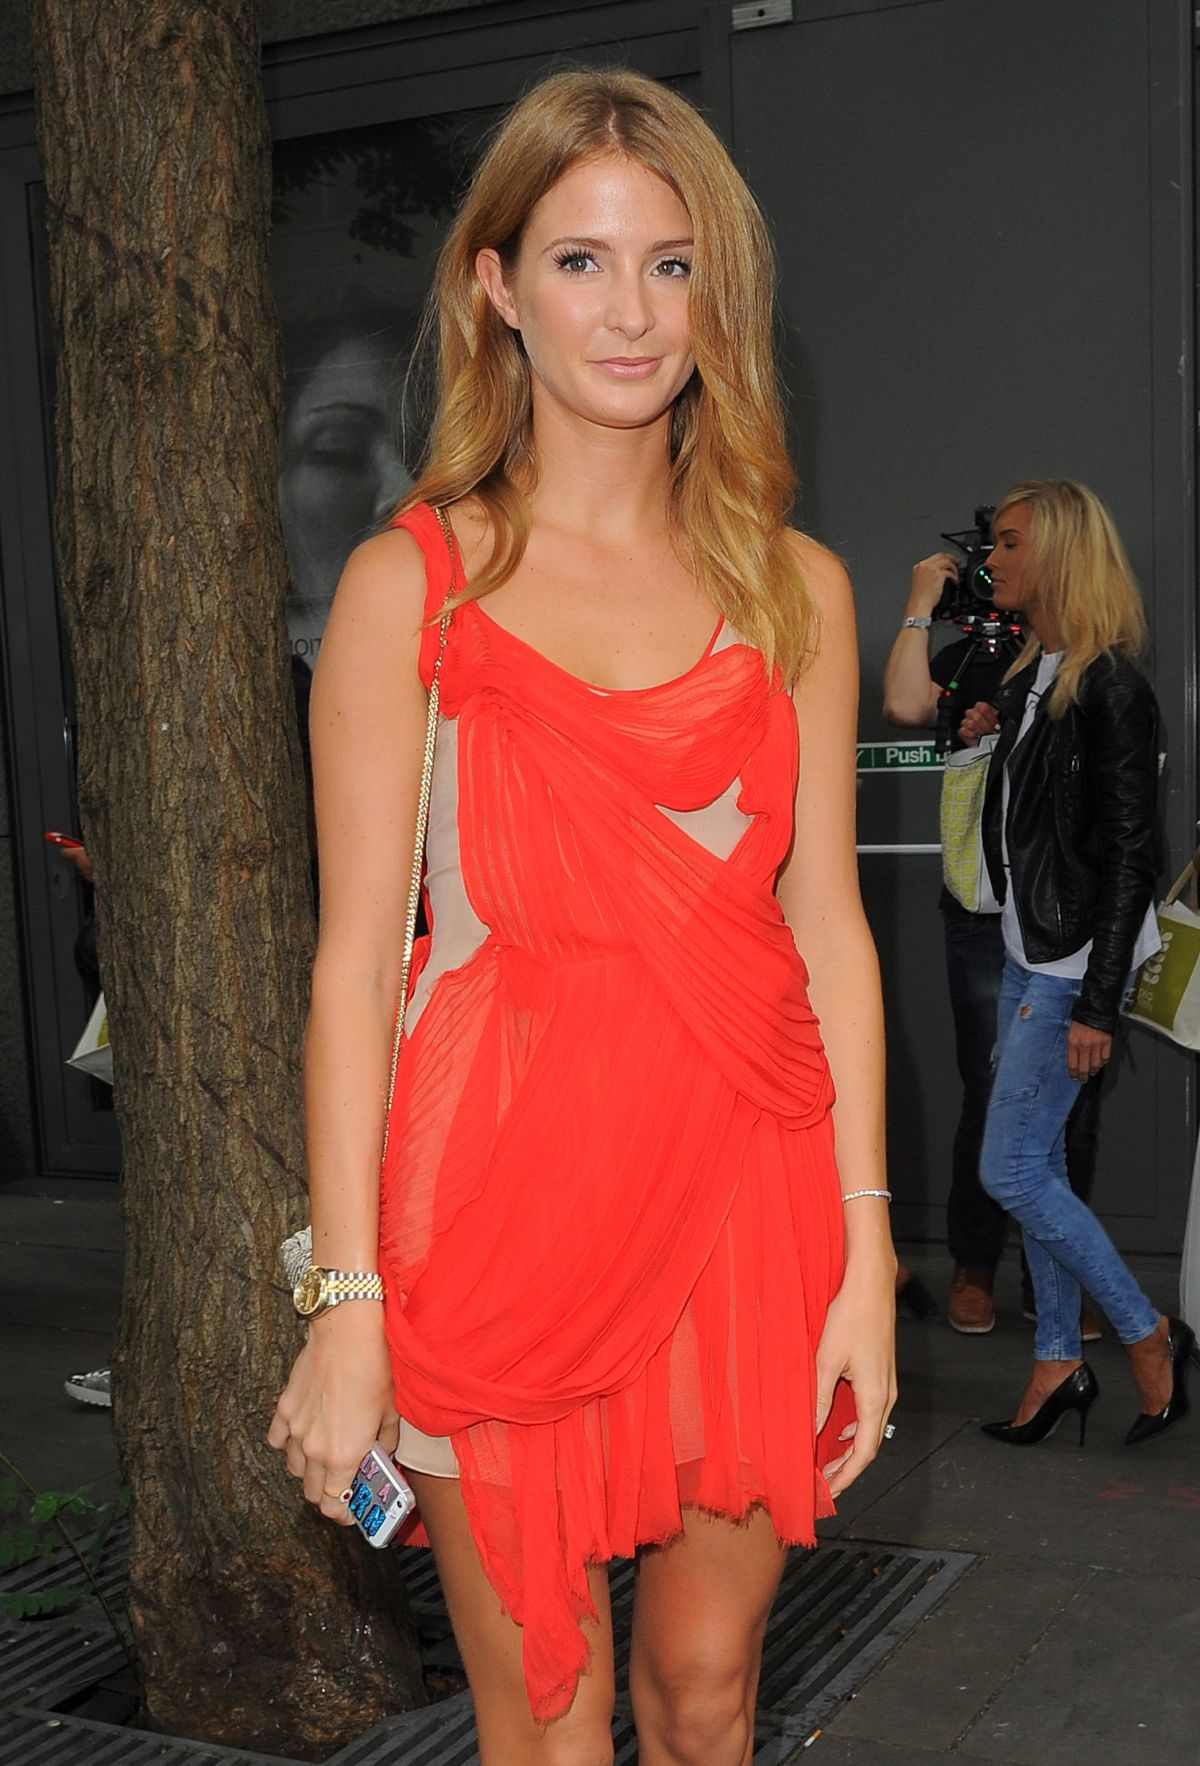 MILLIE MACKINTOSH at Julien Macdonald Fashion Show in London